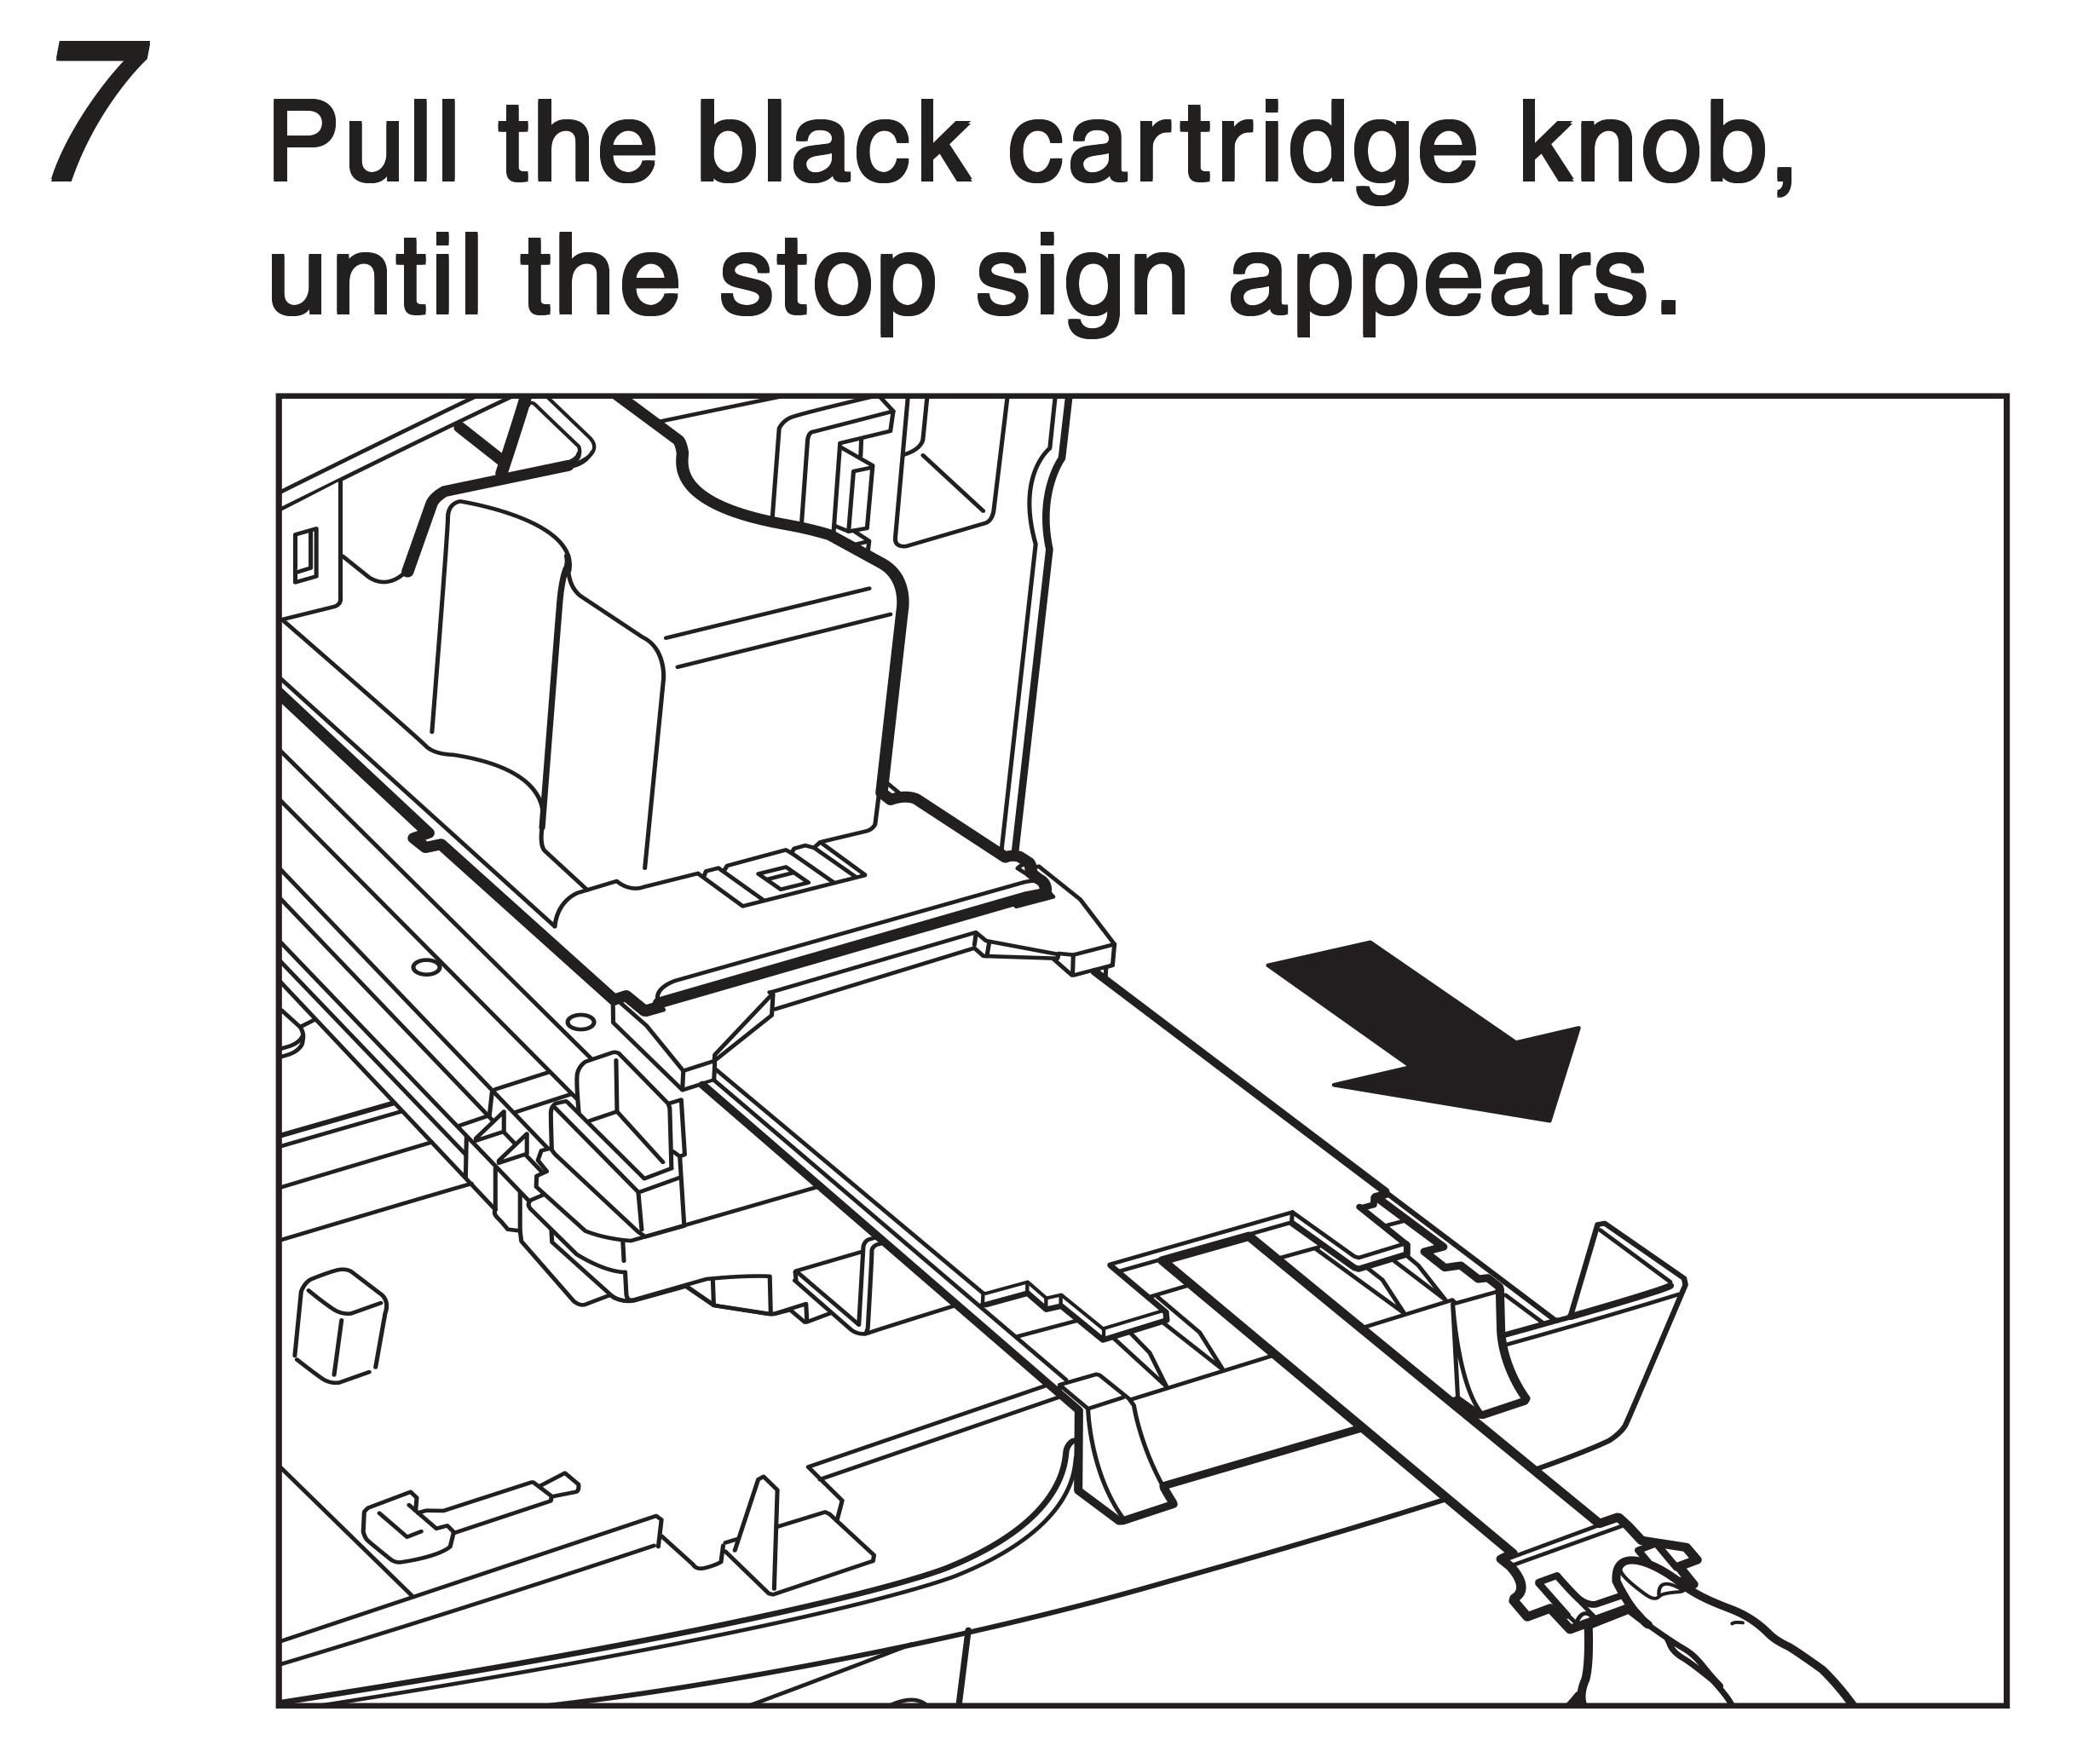 7. Pull the black cartridge know, until the stop sign appears.